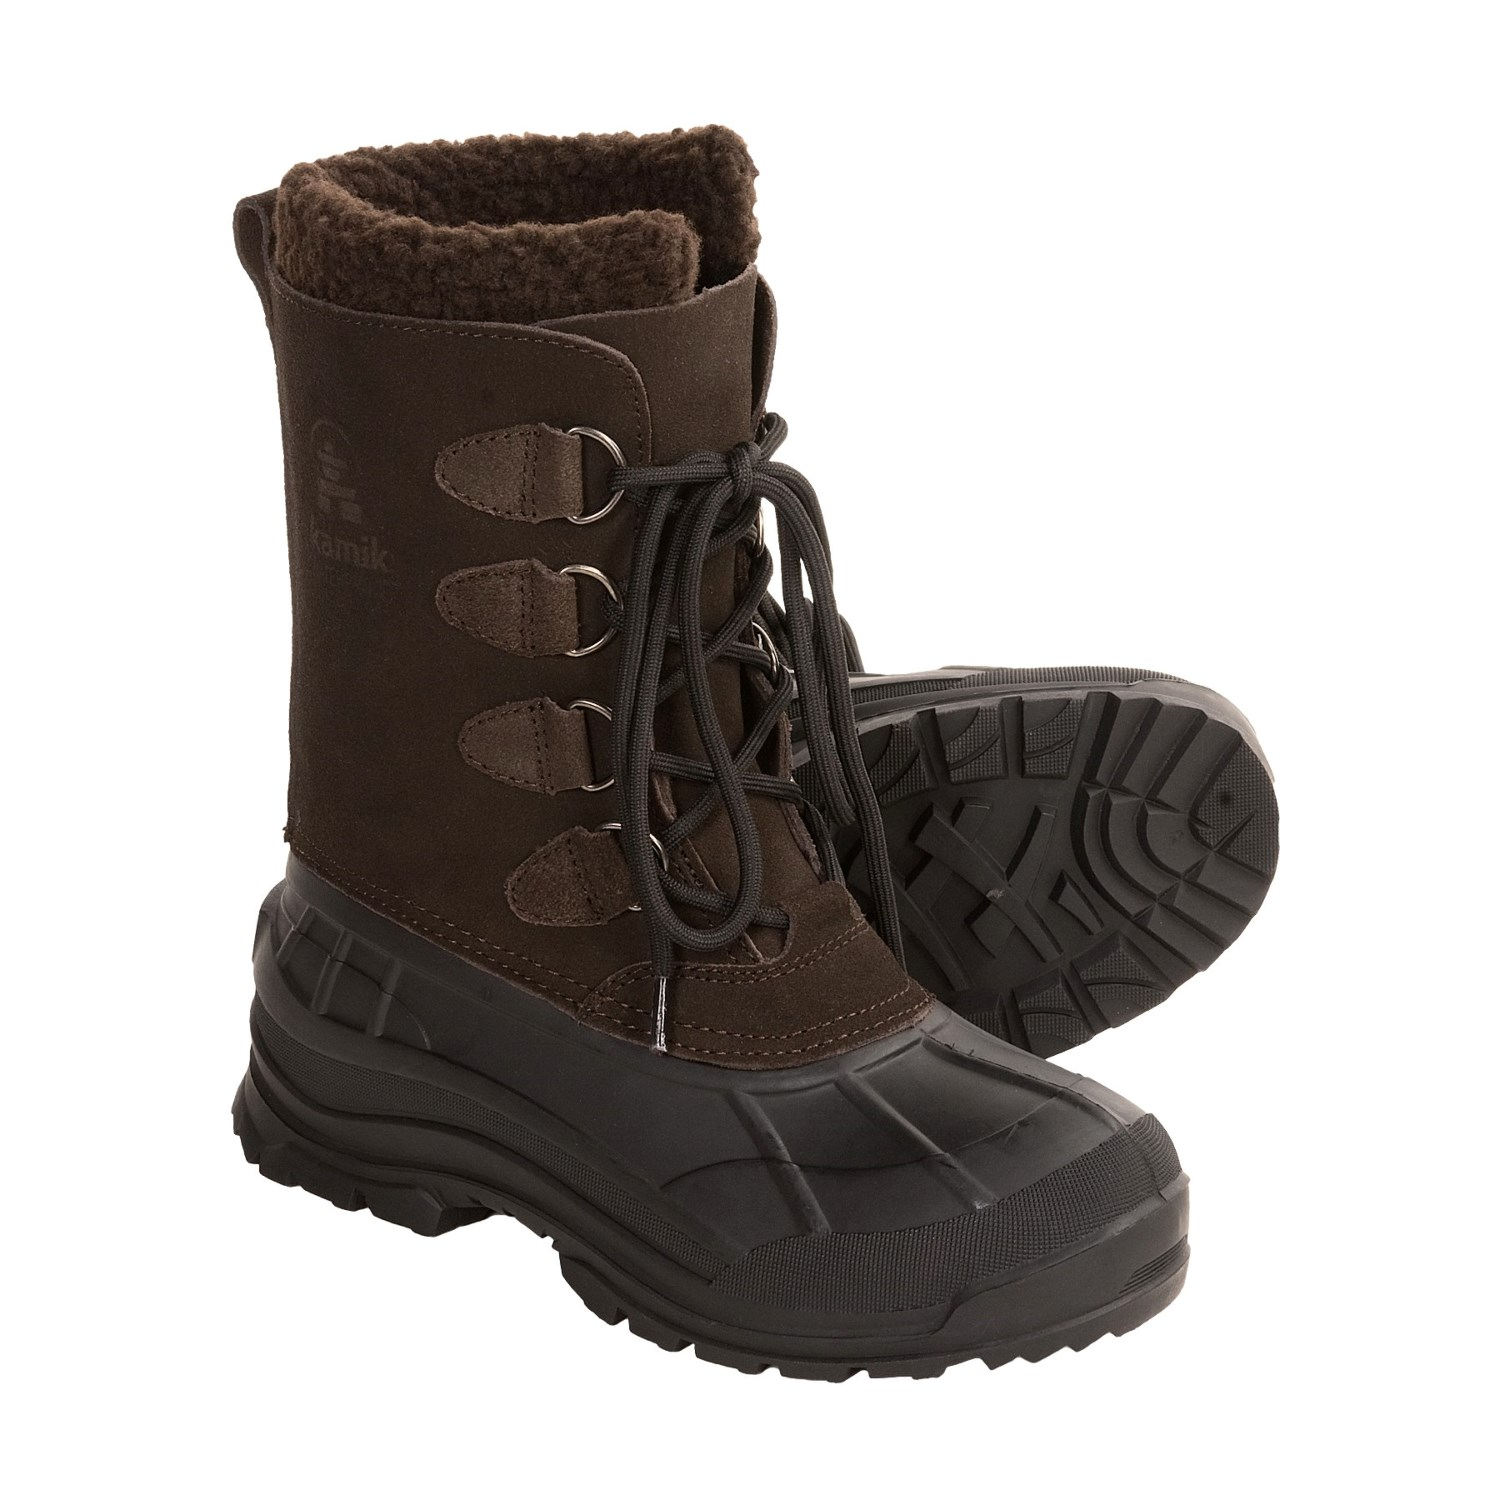 Popular Merrell Captiva Launch 2 Waterproof Boot  Women39s  Backcountrycom